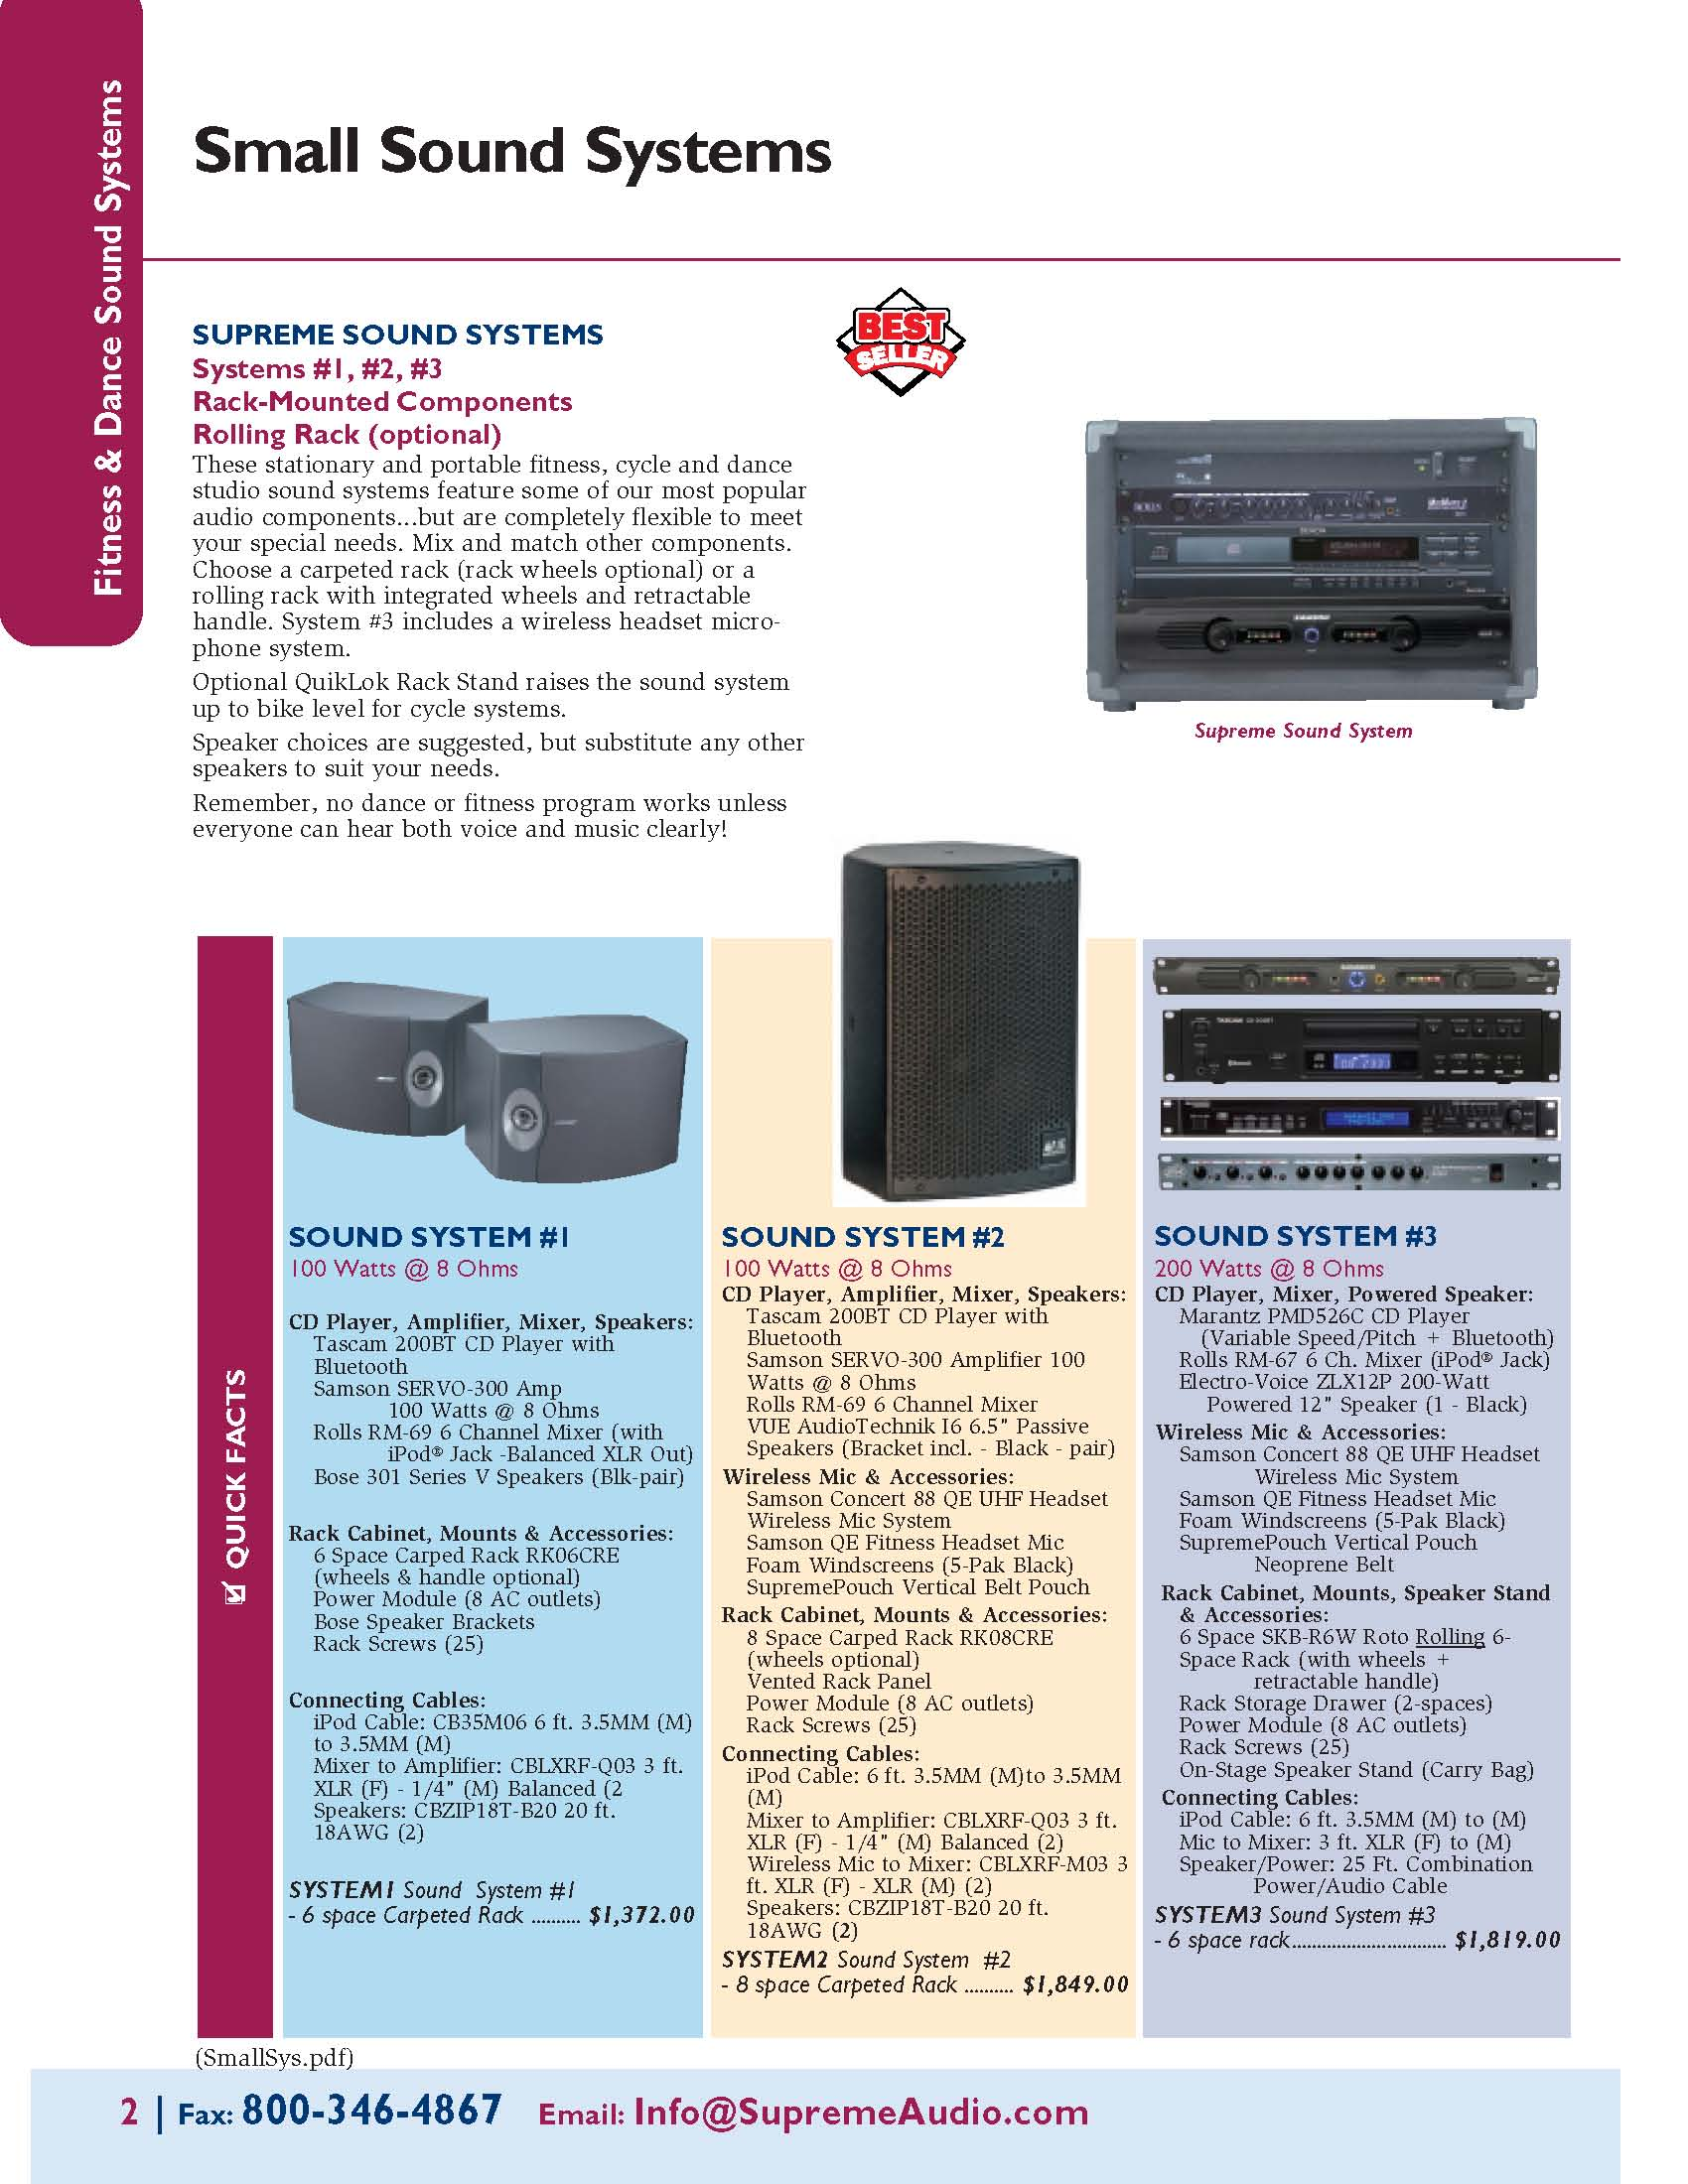 Budget Sound Systems for Group Ex, Cycling & Dance Studios